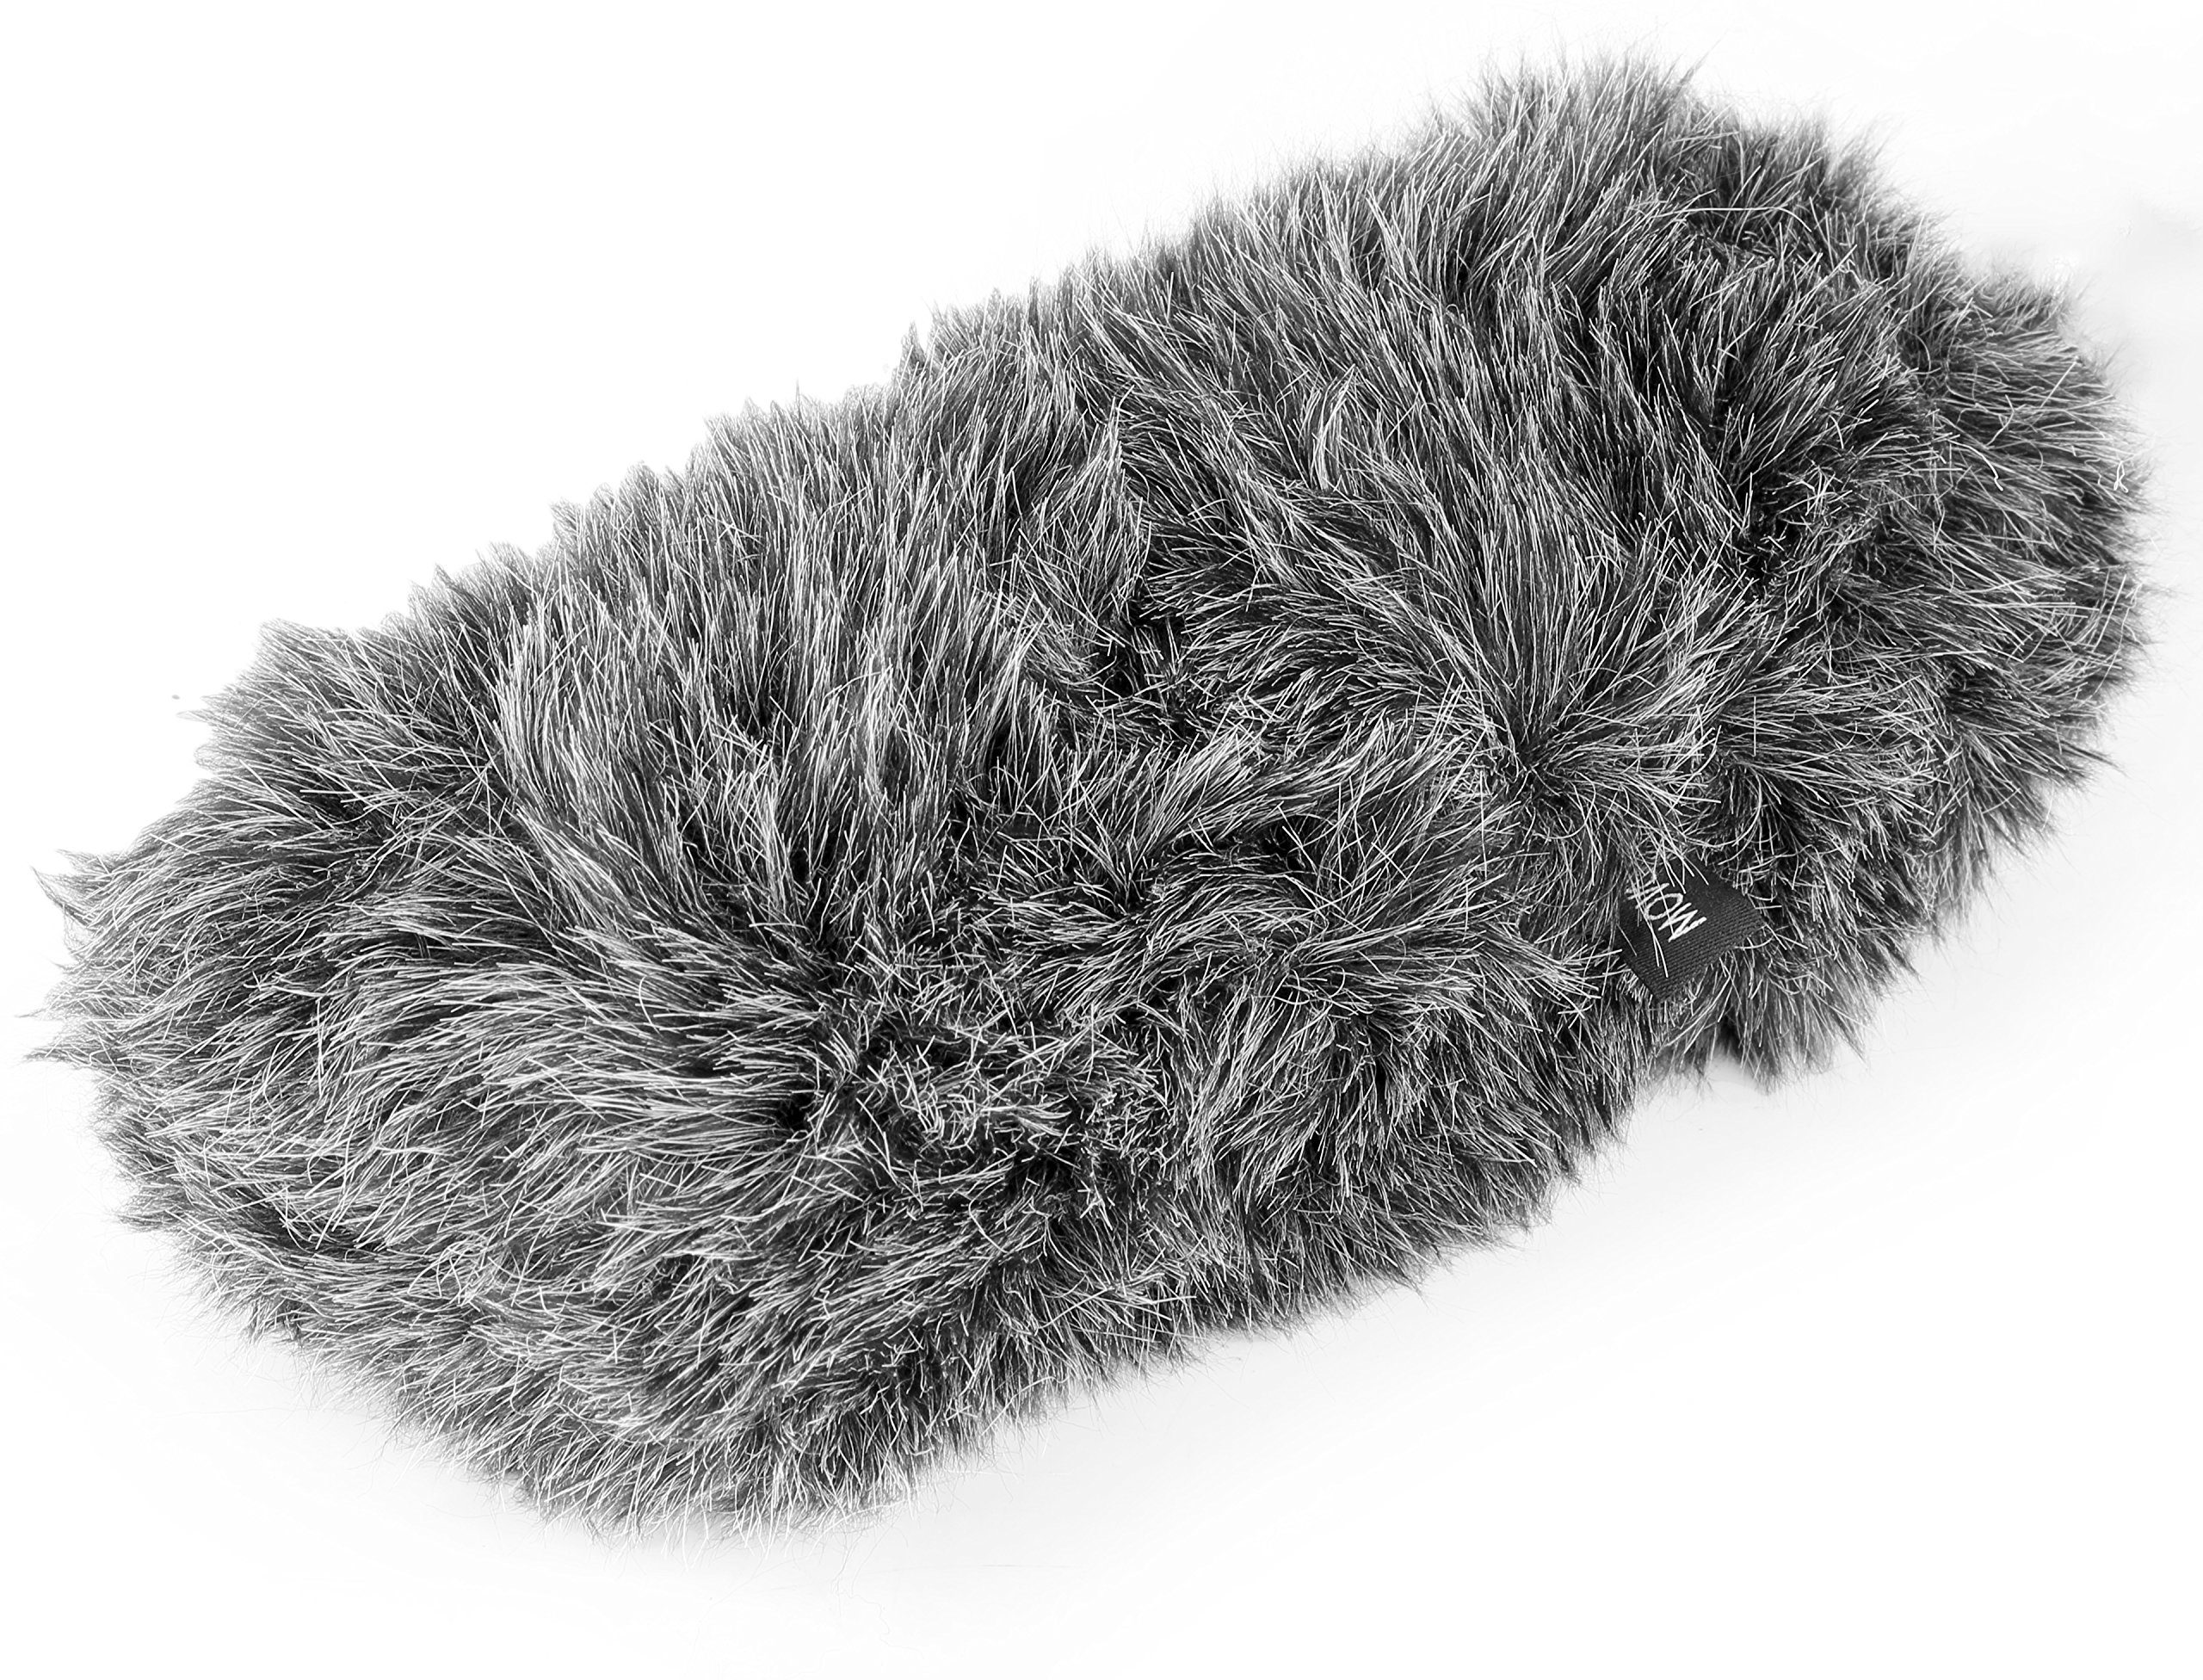 Movo WS-S1000 Furry Outdoor Deadcat Windscreen for Shotgun Microphones up to 7-inch (18cm) Long - Fits Rode VideoMic, NTG-2, Sennheiser ME66, Audio-Technica AT-897 & More